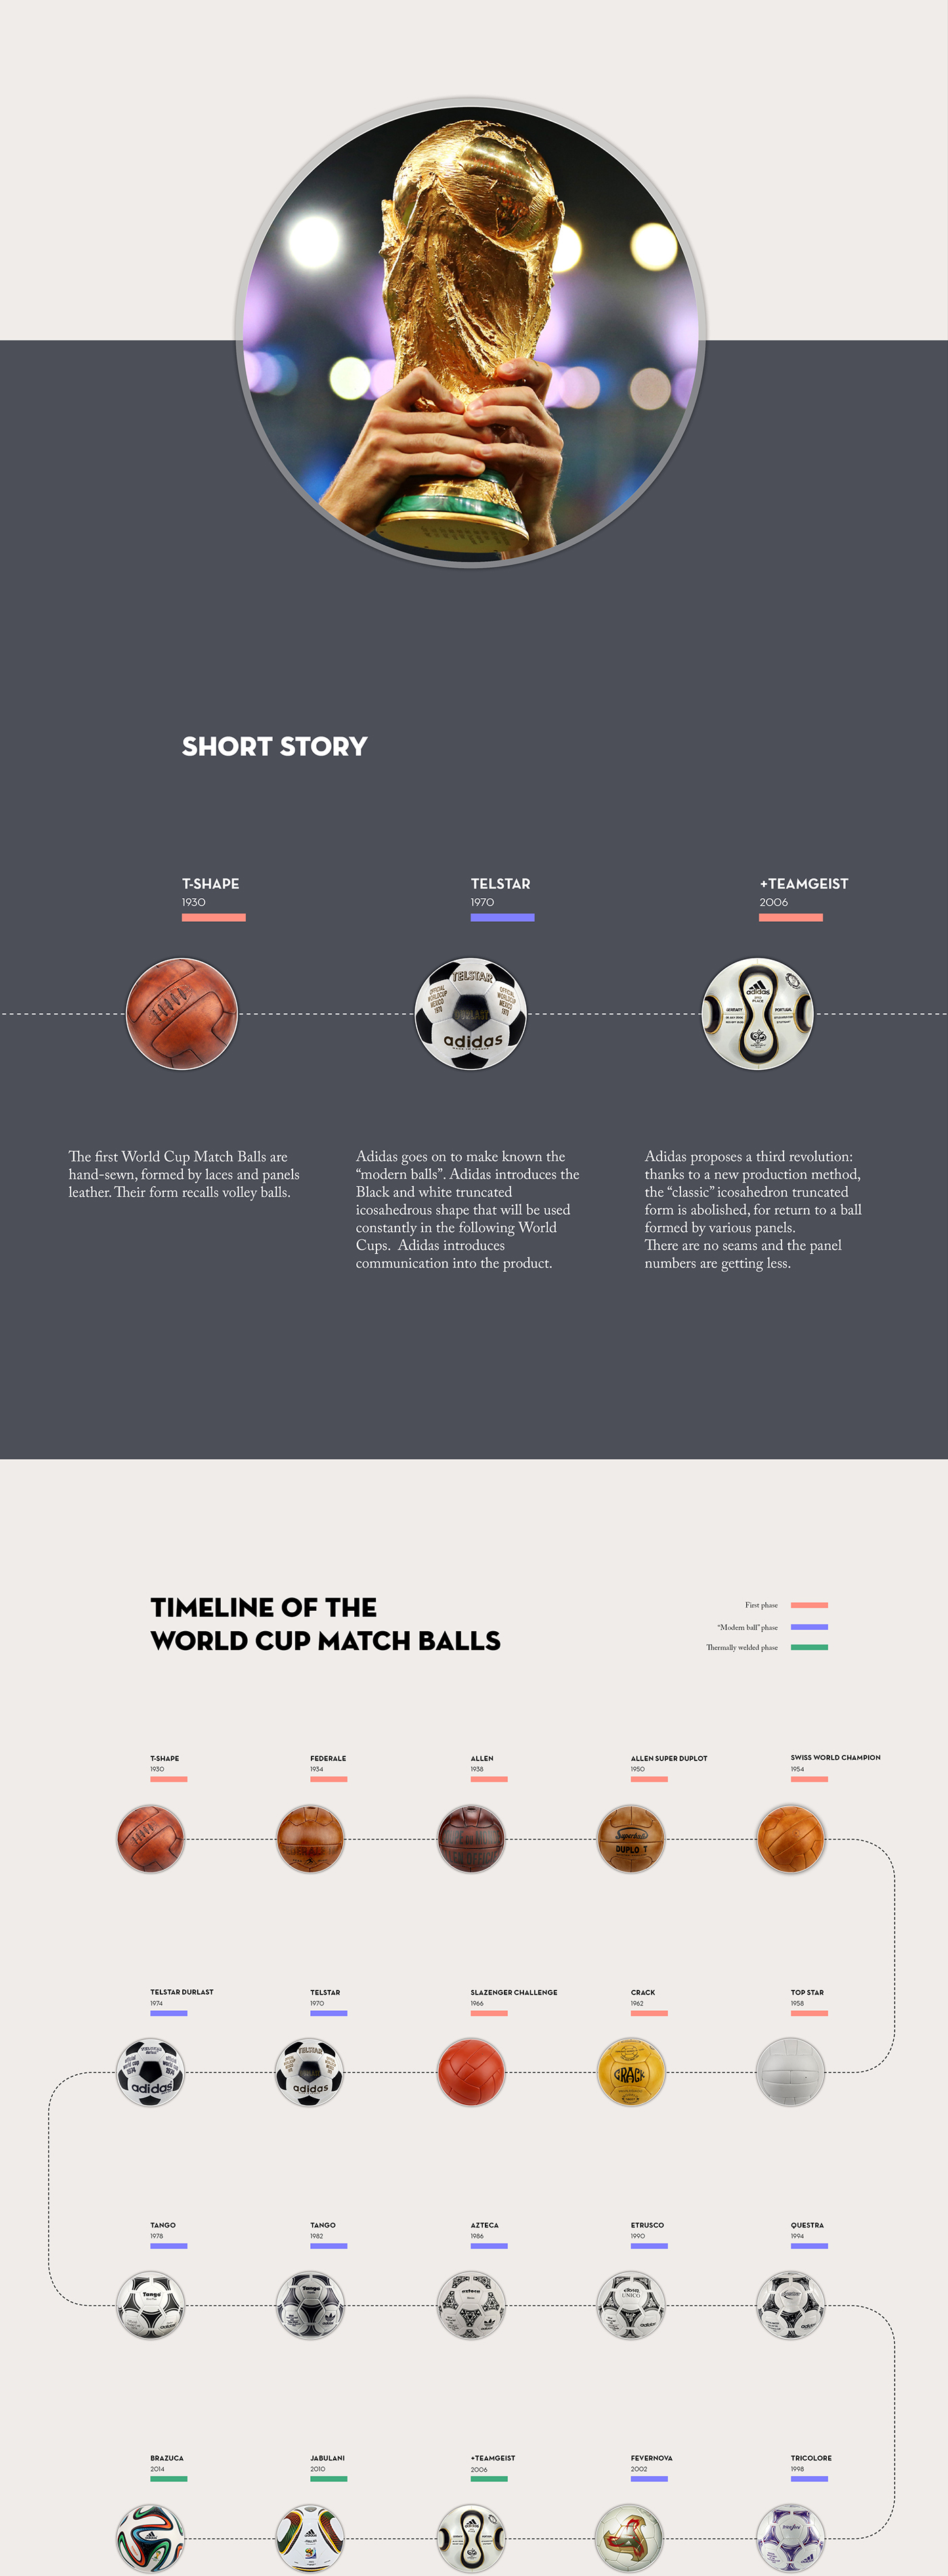 THE BOOK OF THE WORLD CUP MATCH BALLS on Behance